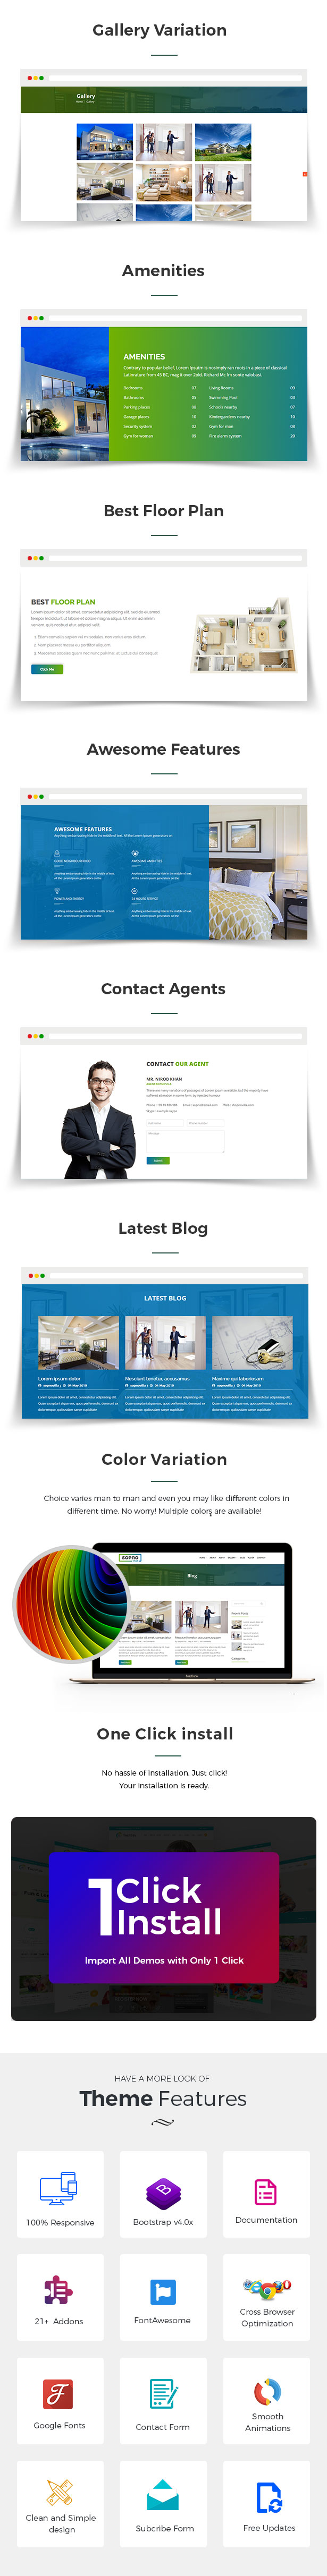 Sopnovilla – Single Property WordPress Theme - 3